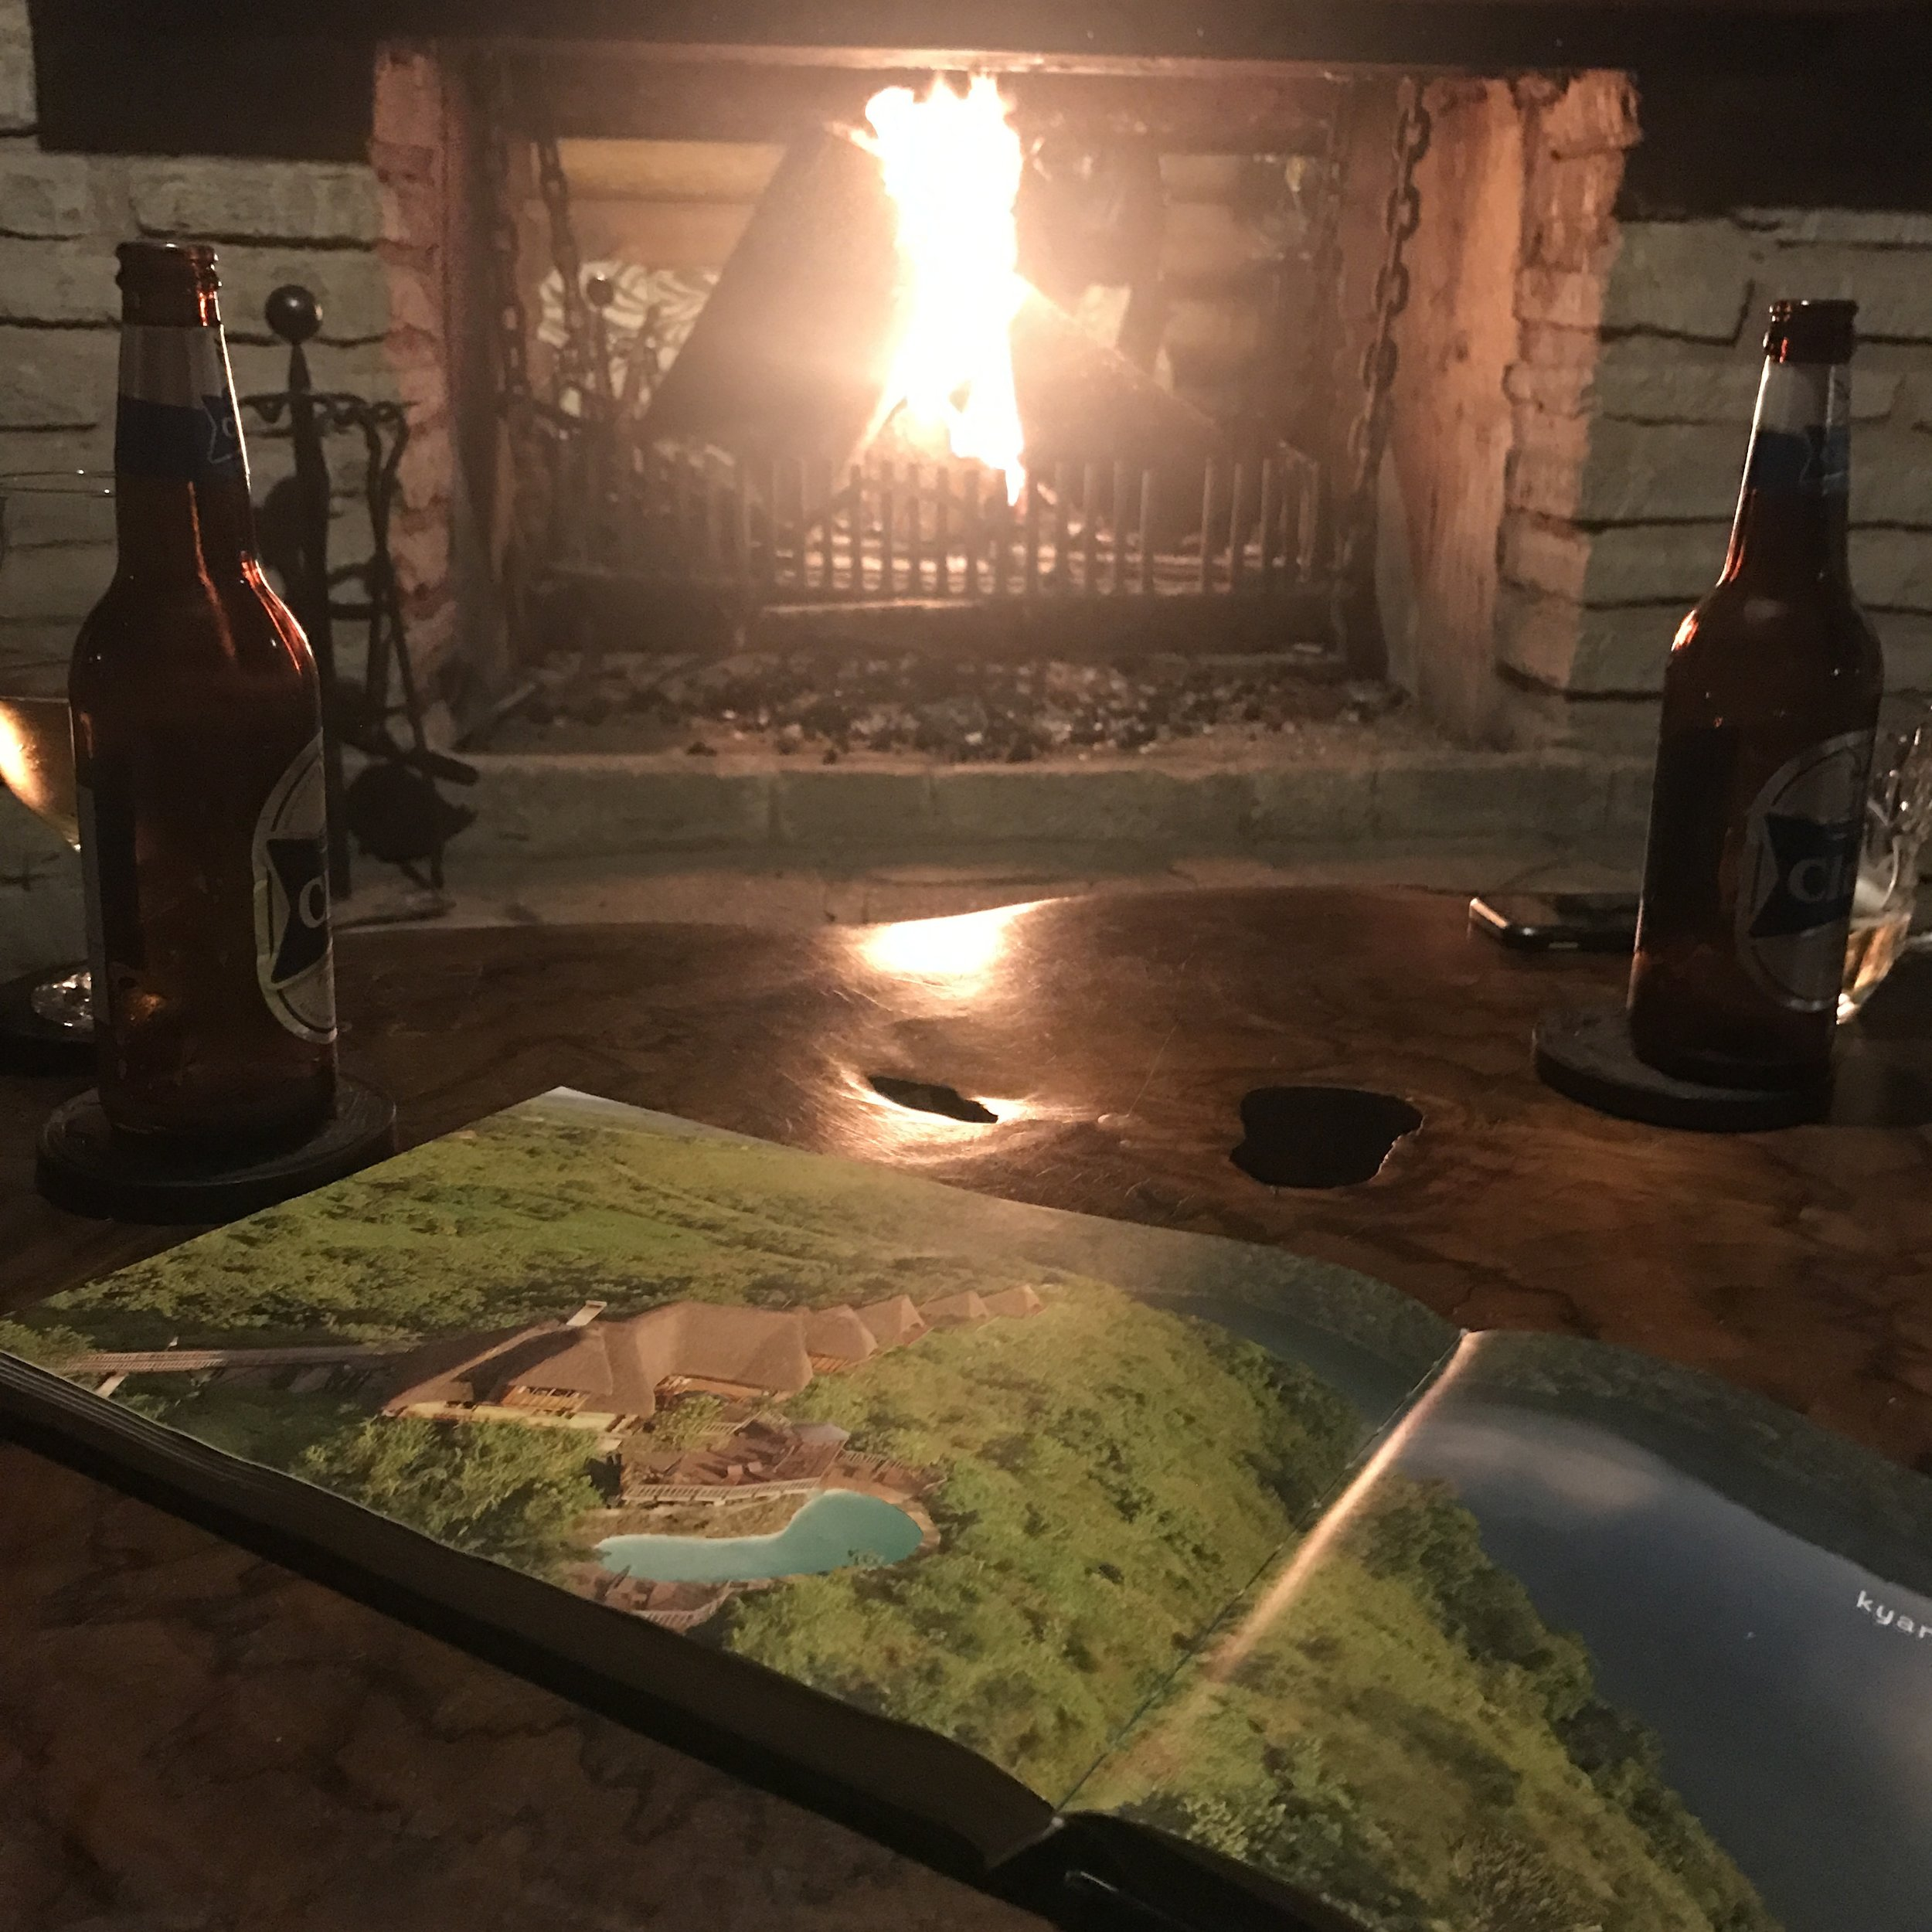 Spend evenings with beers by the fire